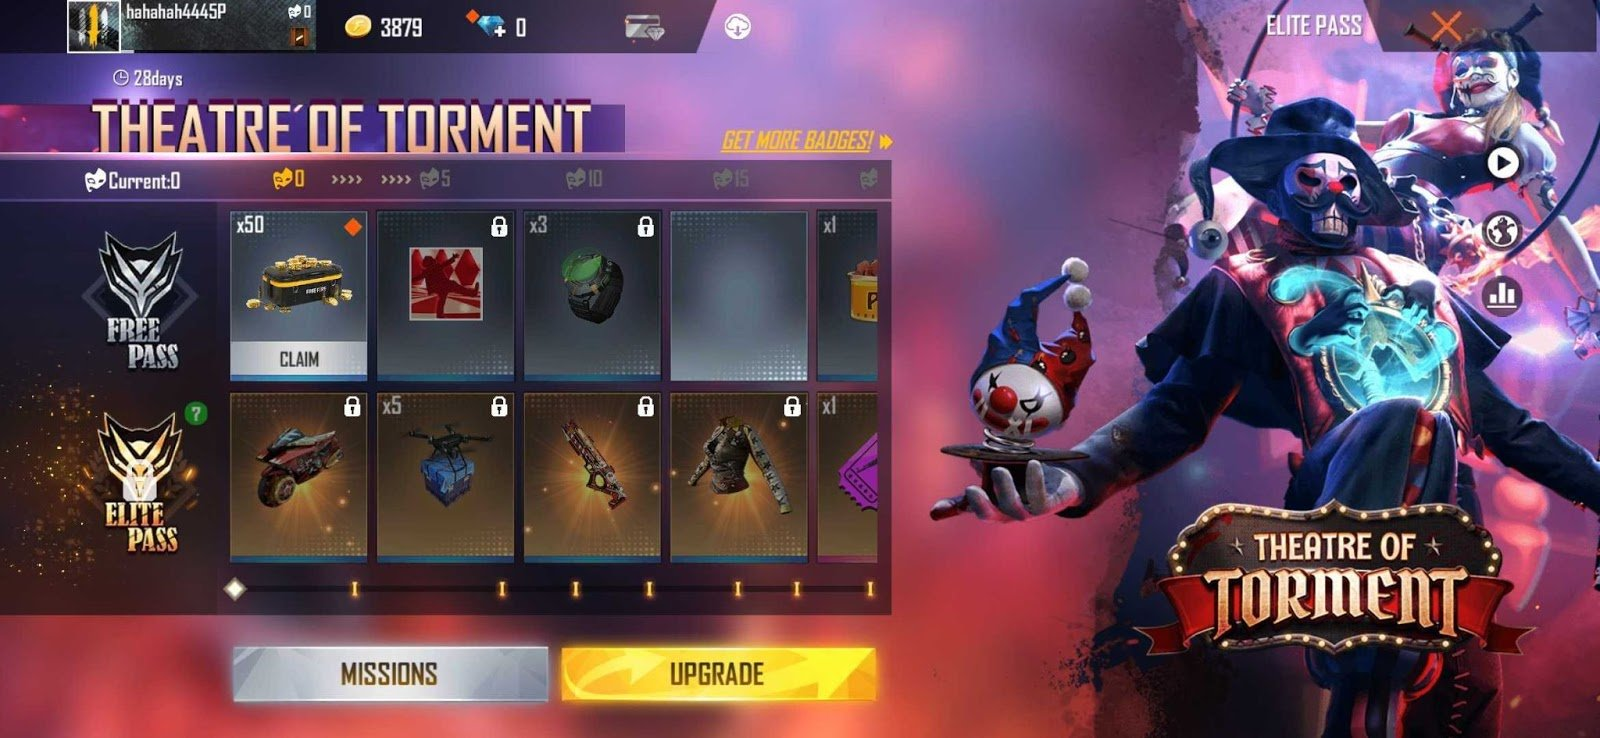 Free Fire Season 36 Elite Pass: Duration, Rewards, How to Buy, and more